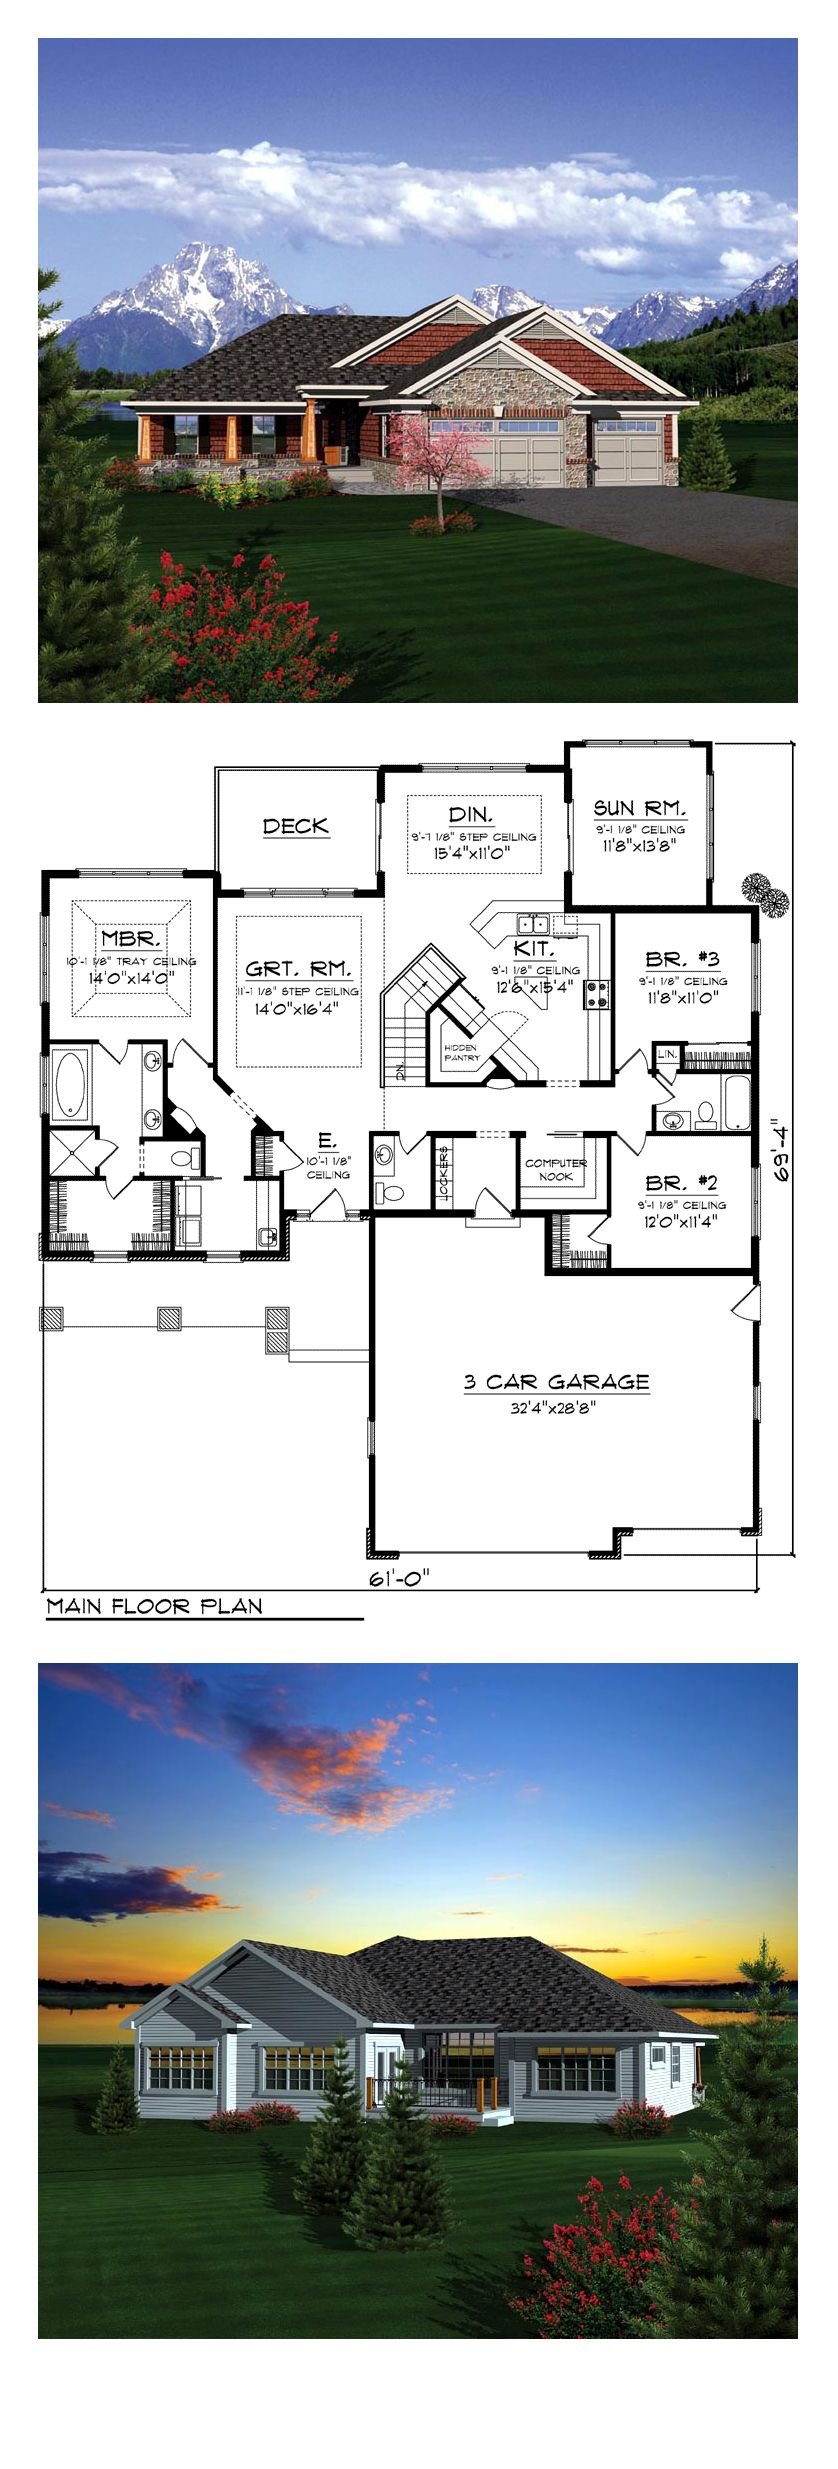 Ranch House Plan 73404 Total Living Area 2196 Sq Ft